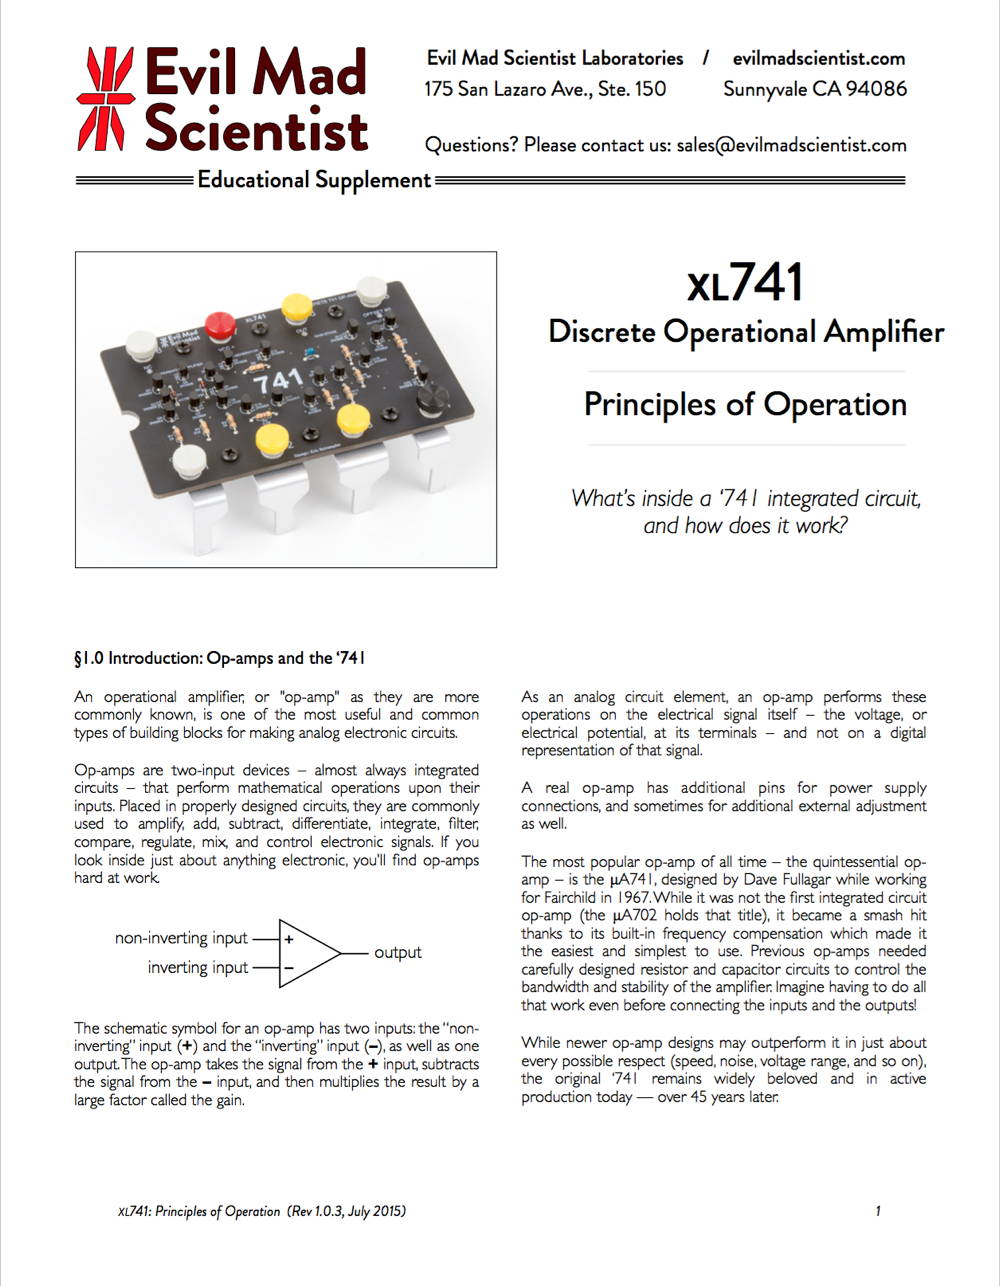 XL741 Documentation (PDF)